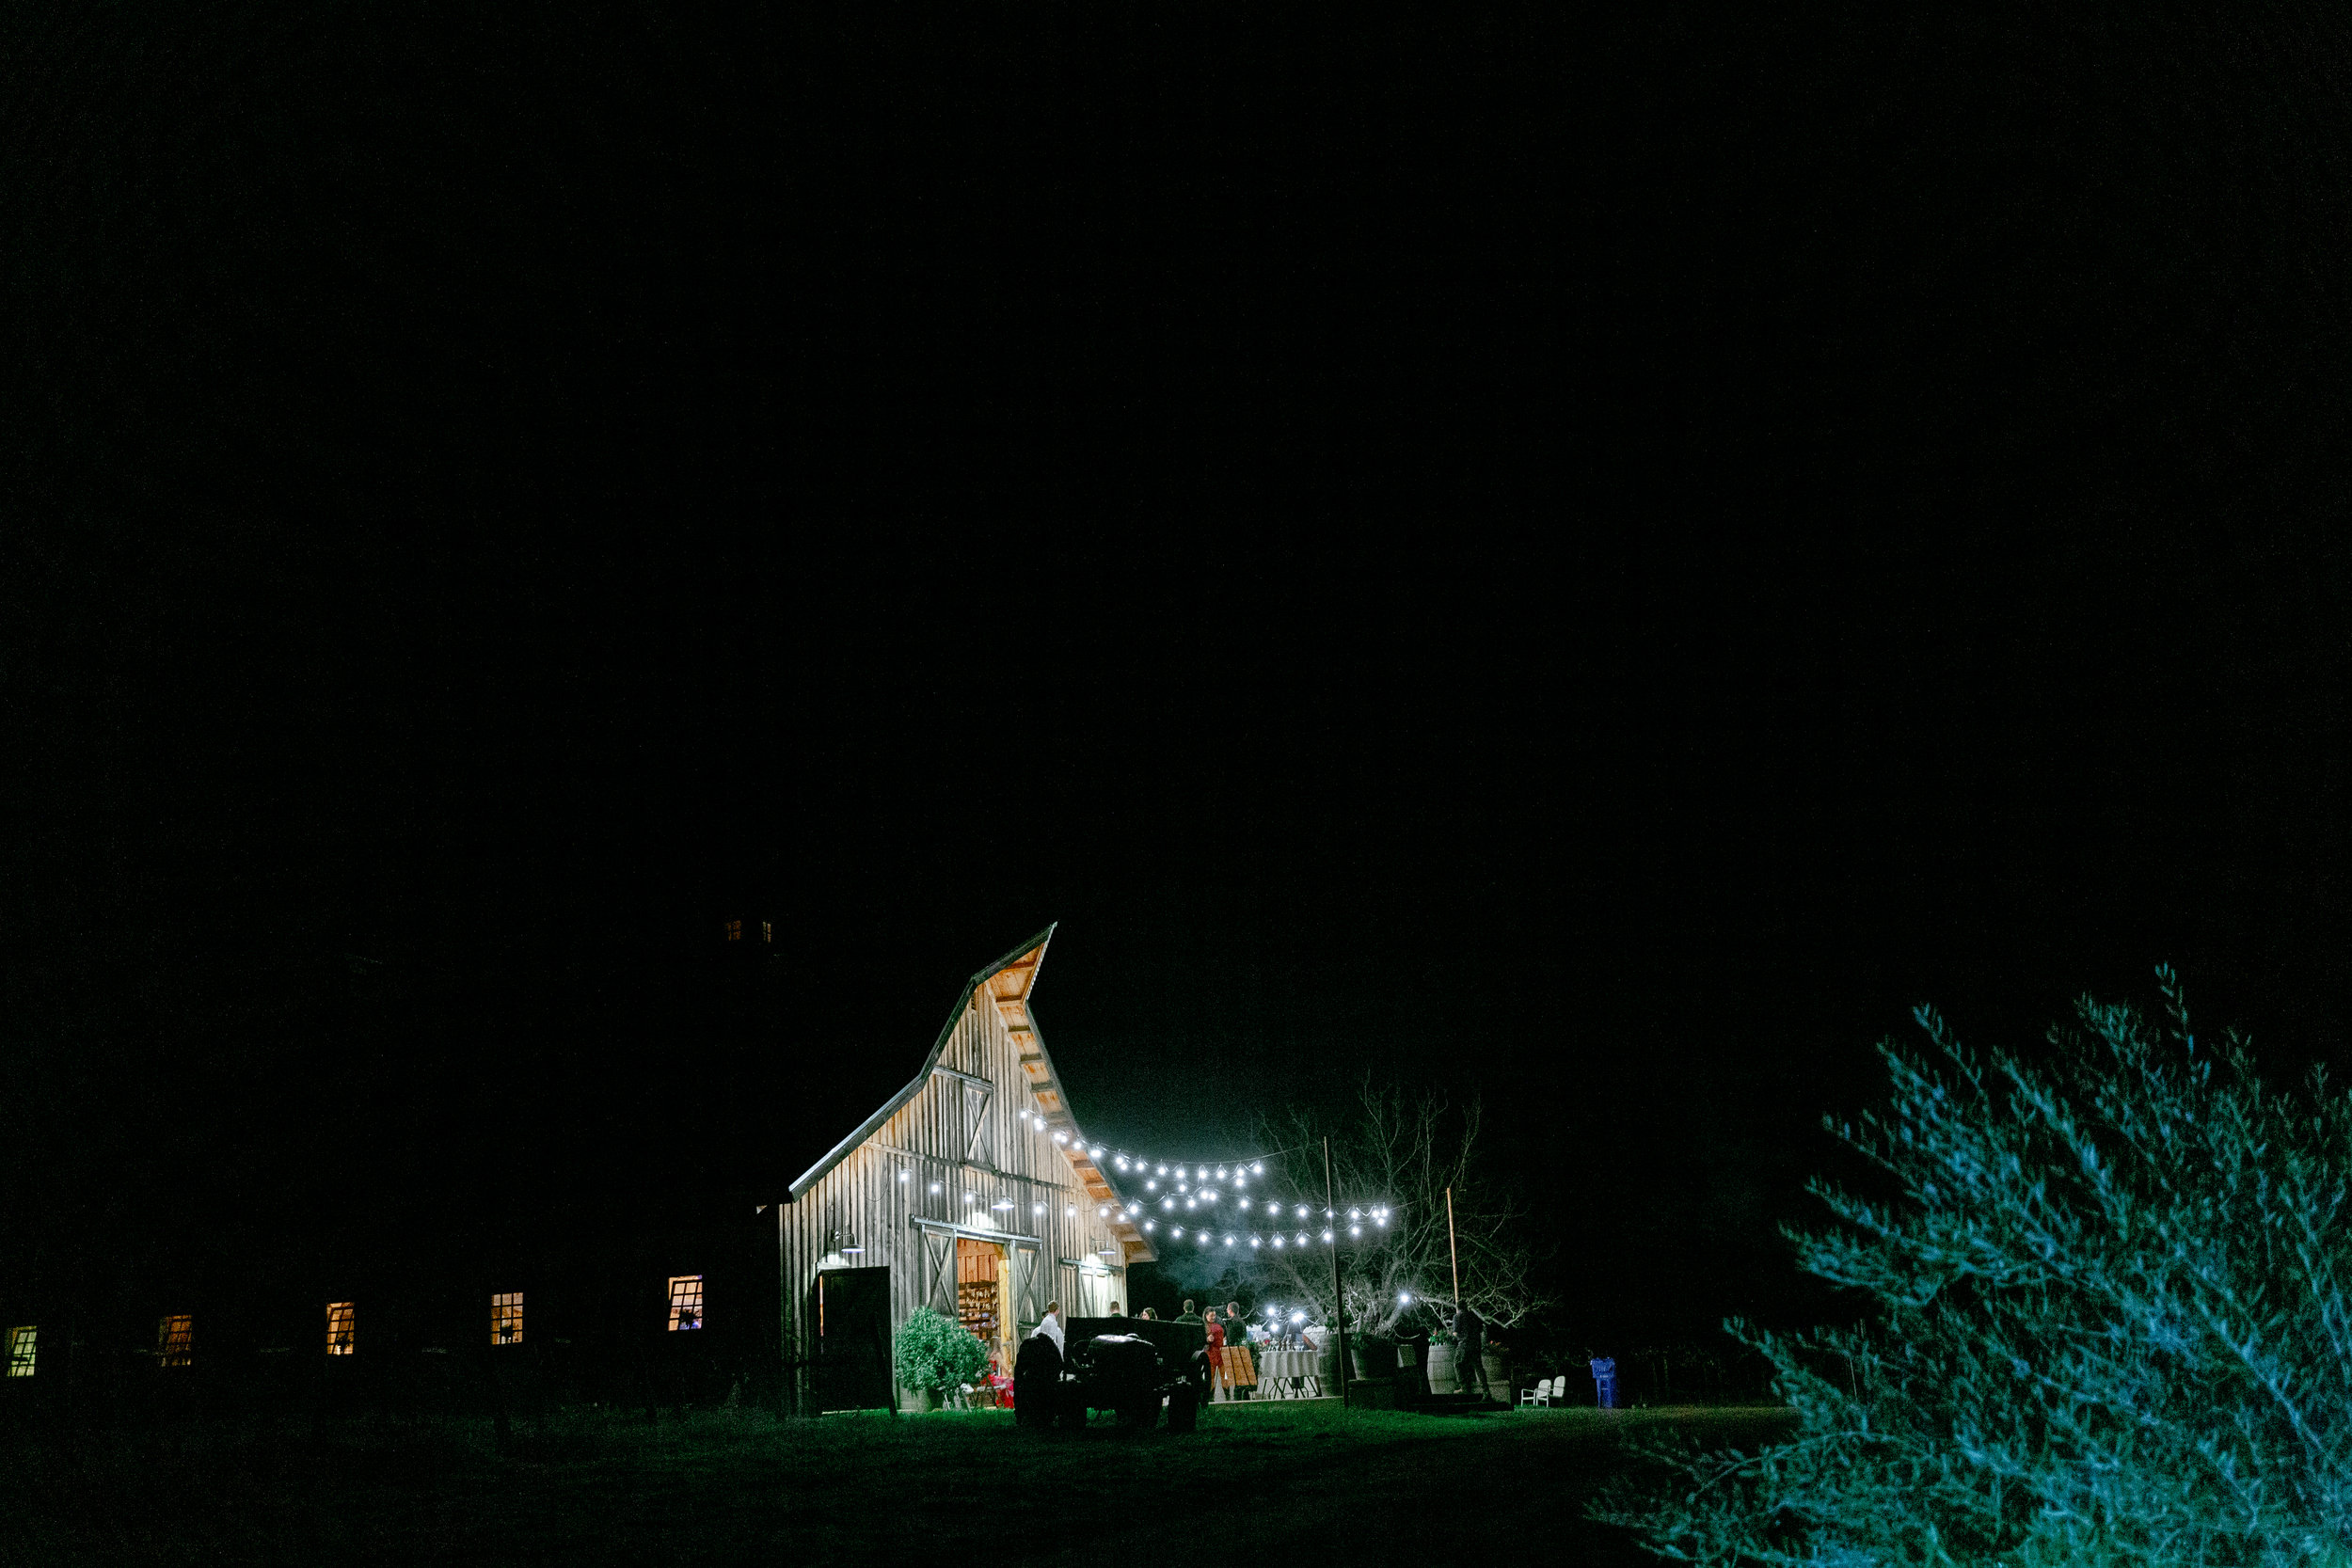 amador-cellars-barn-at-night-wedding-reception.jpg